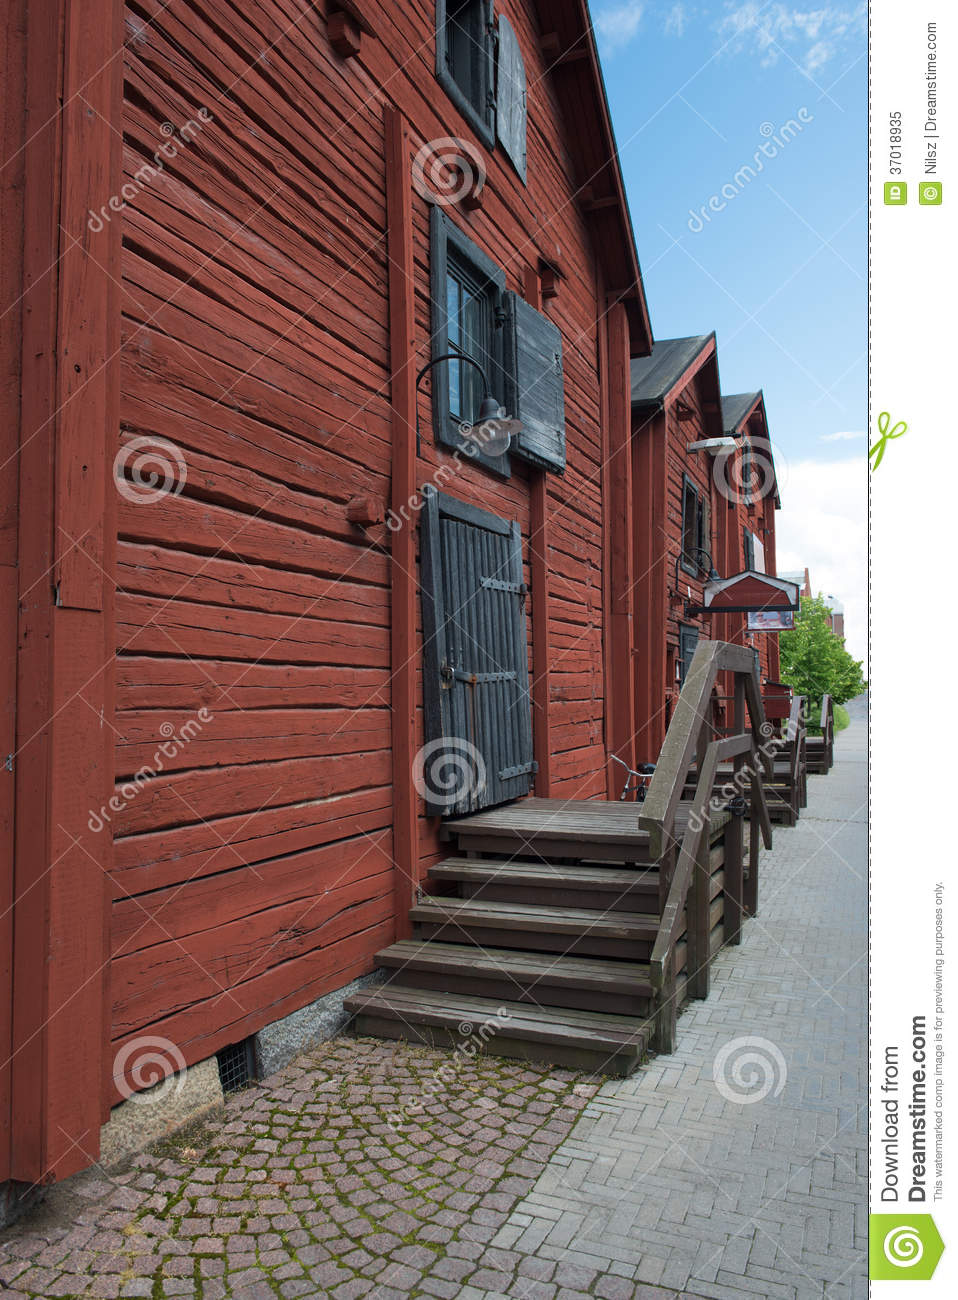 Old Scandinavian Wood Houses Royalty Free Stock Photo  Image 37018935